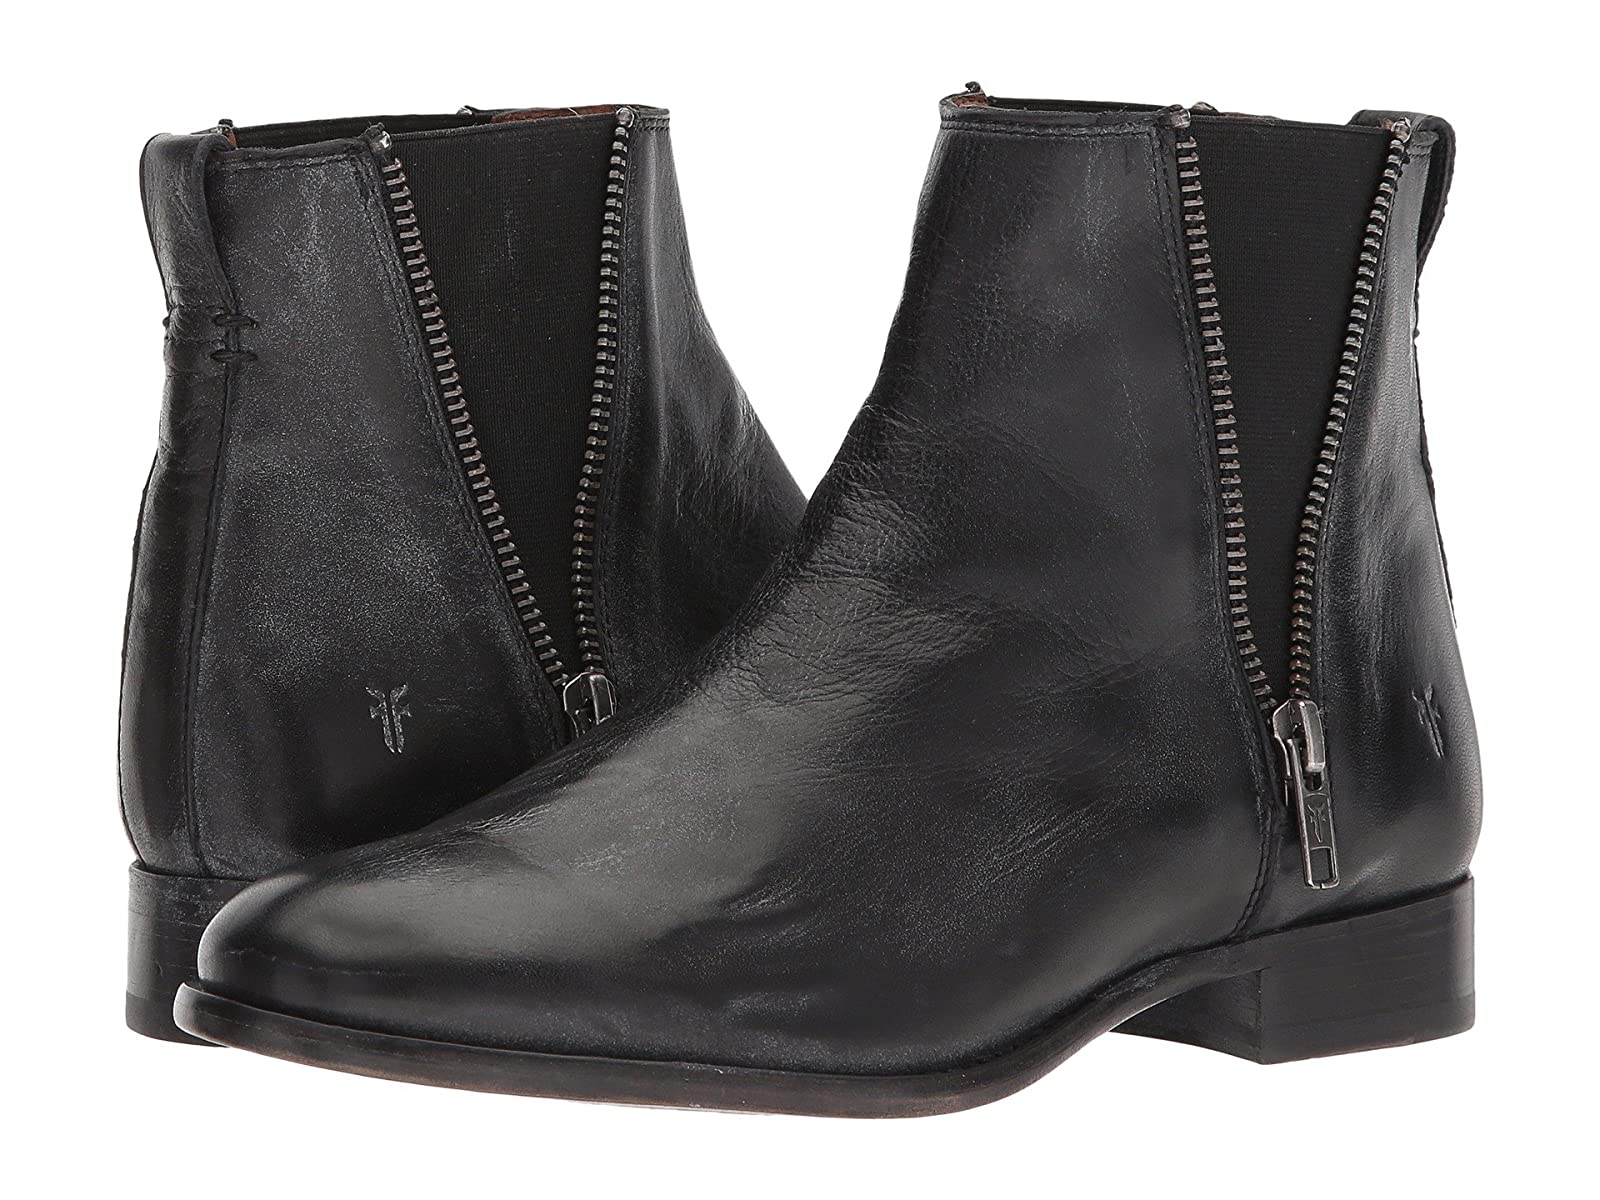 Frye Carly Zip ChelseaAffordable and distinctive shoes